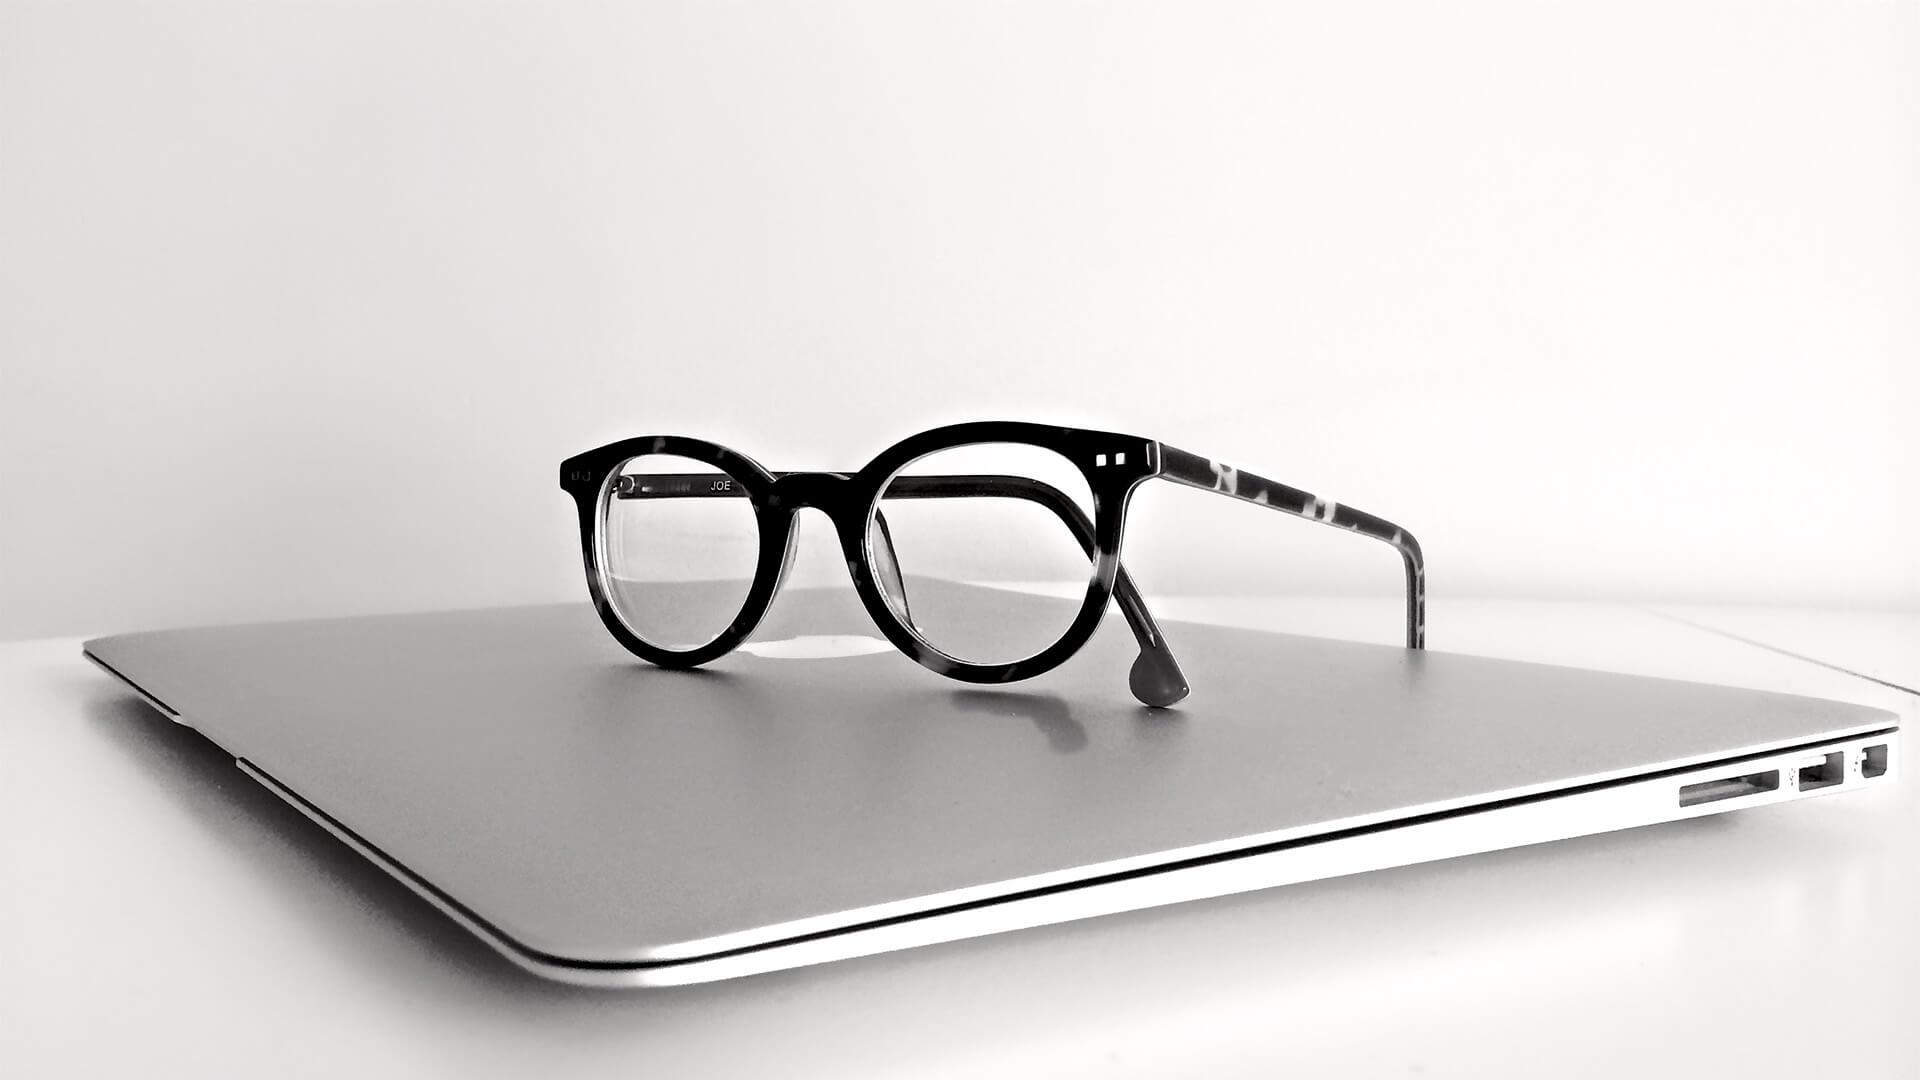 MacBook and glasses